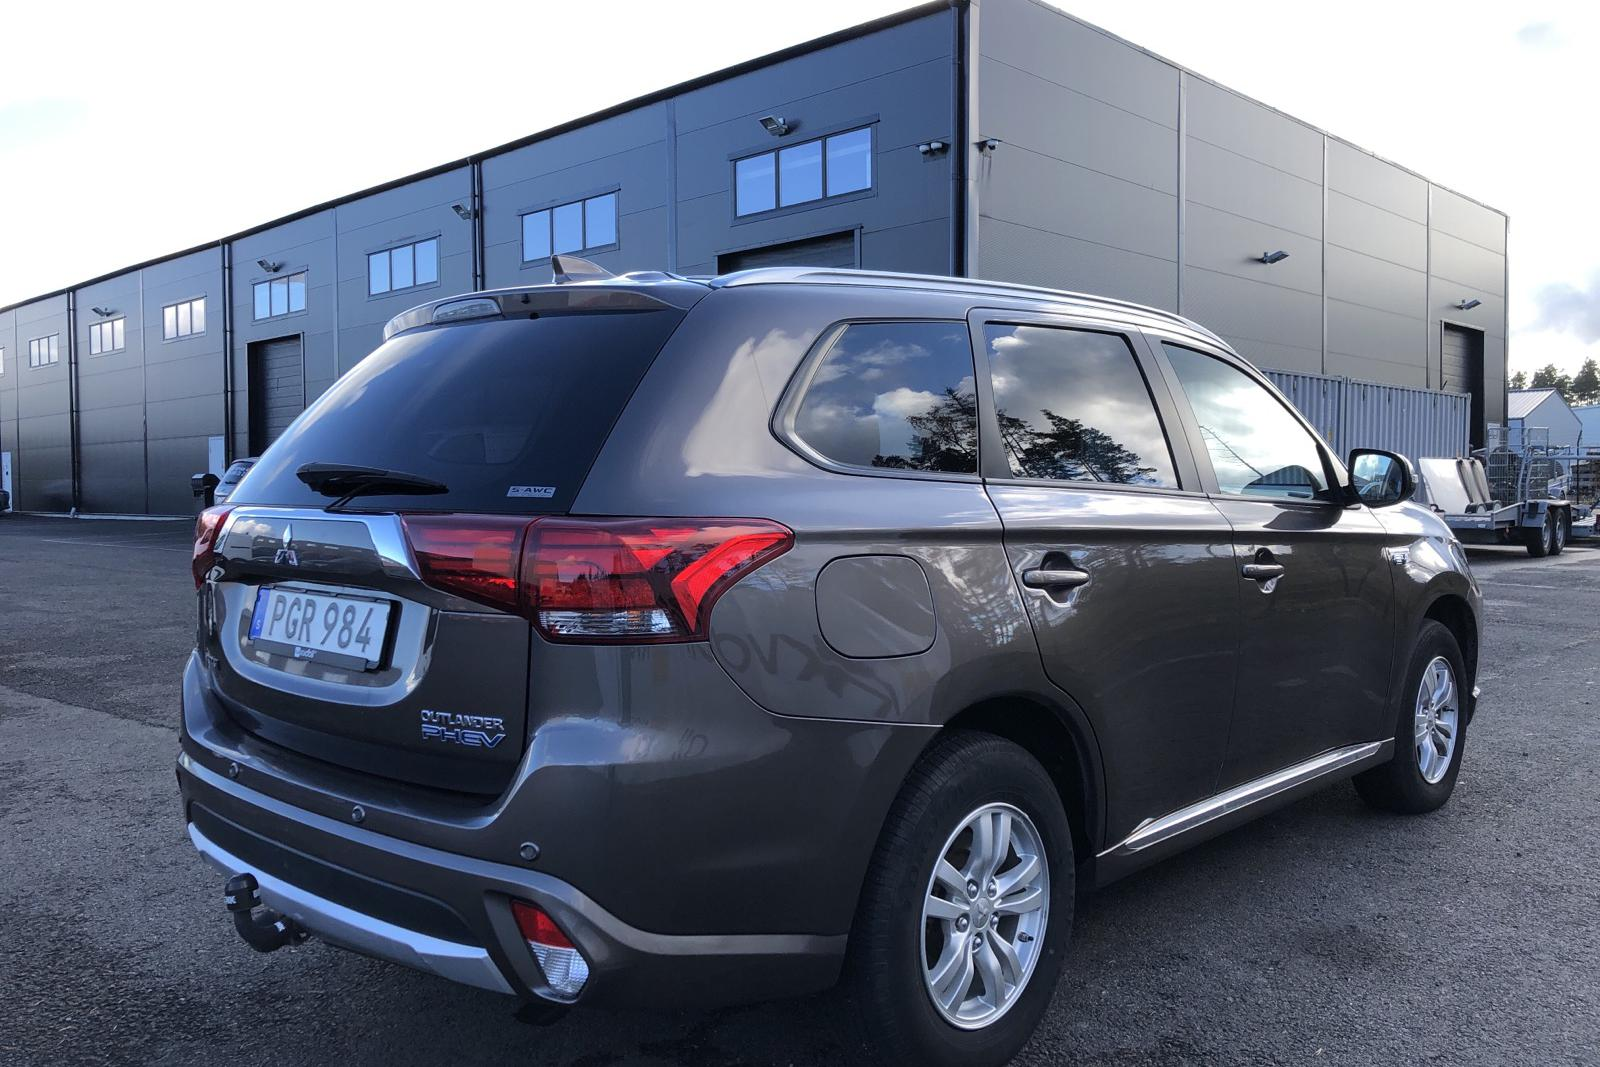 Mitsubishi Outlander 2.0 Plug-in Hybrid 4WD (121hk) - 91 000 km - Automatic - brown - 2017